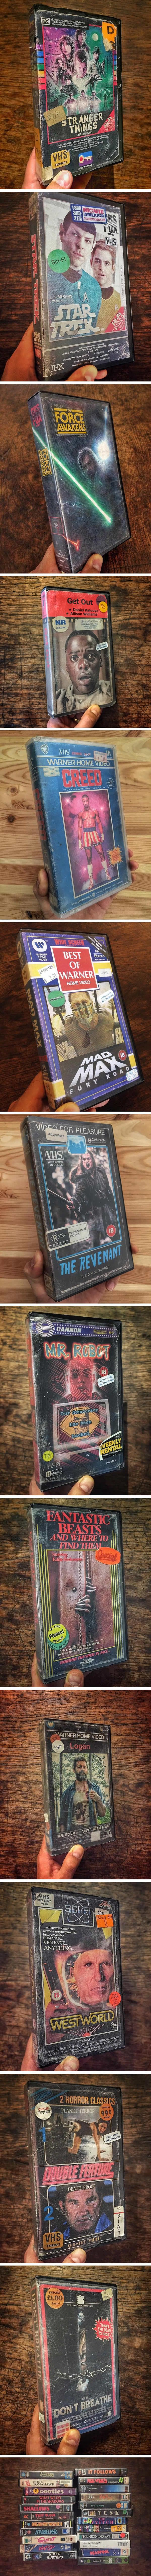 Nostalgic Artist Steelberg Reimagines Today's TV Shows and Films as Retro VHS Tapes